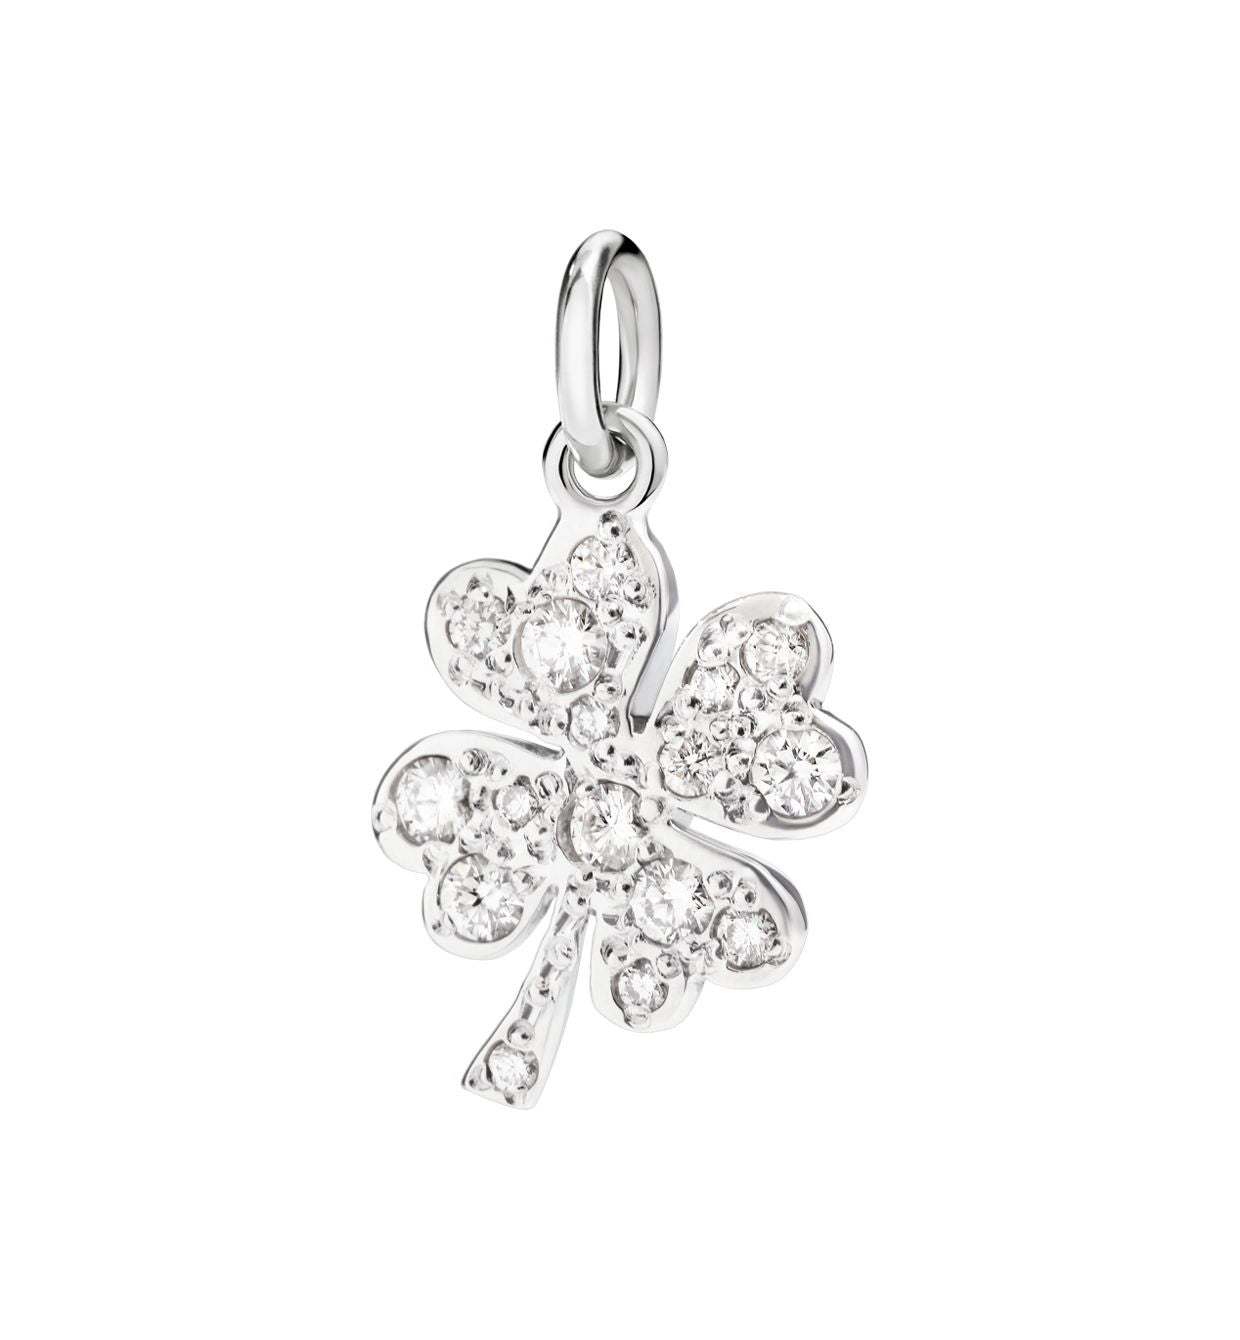 DoDo Four Leaf Clover in 18k White Gold with Diamonds - Orsini Jewellers NZ